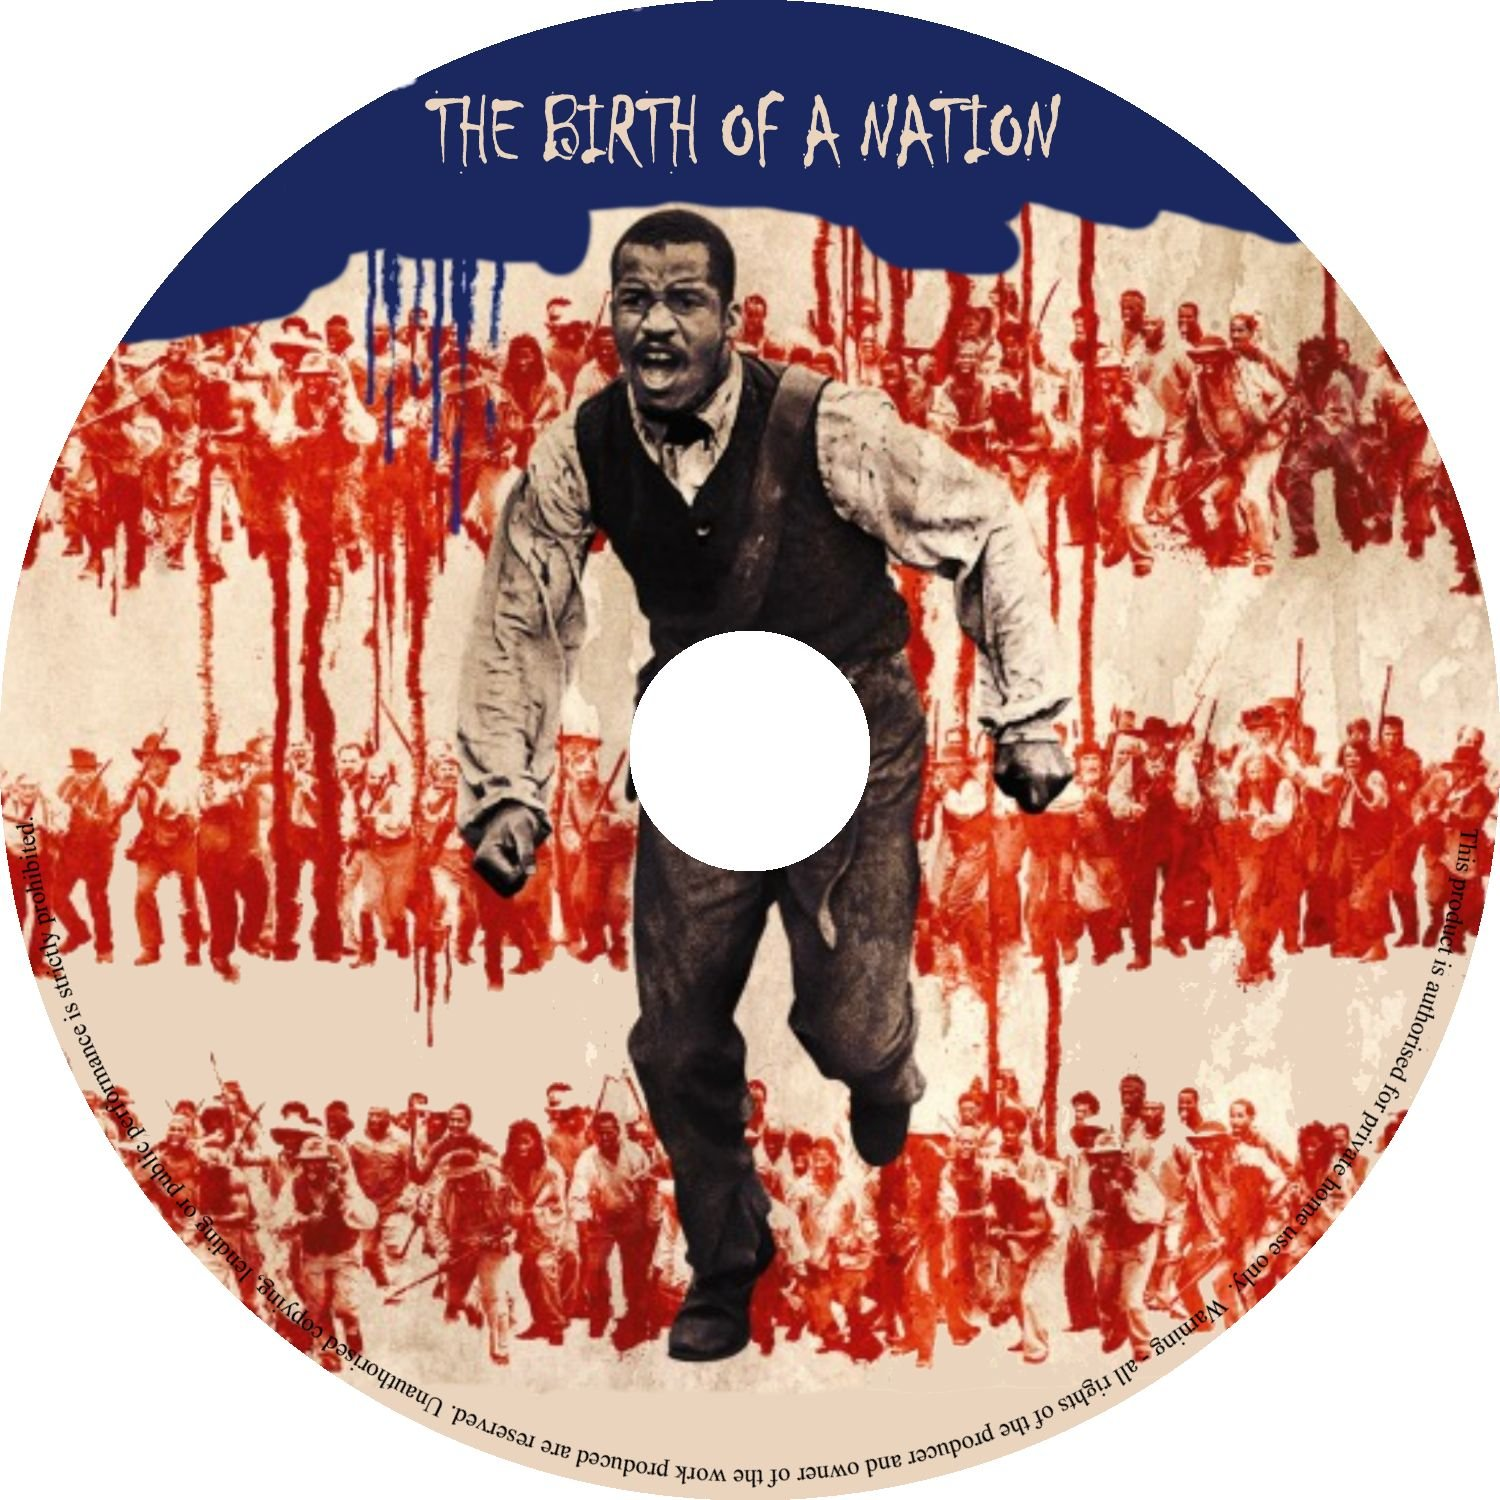 birth nation essay Read this essay on music in the birth of a nation come browse our large digital warehouse of free sample essays get the knowledge you need in order to pass your classes and more.